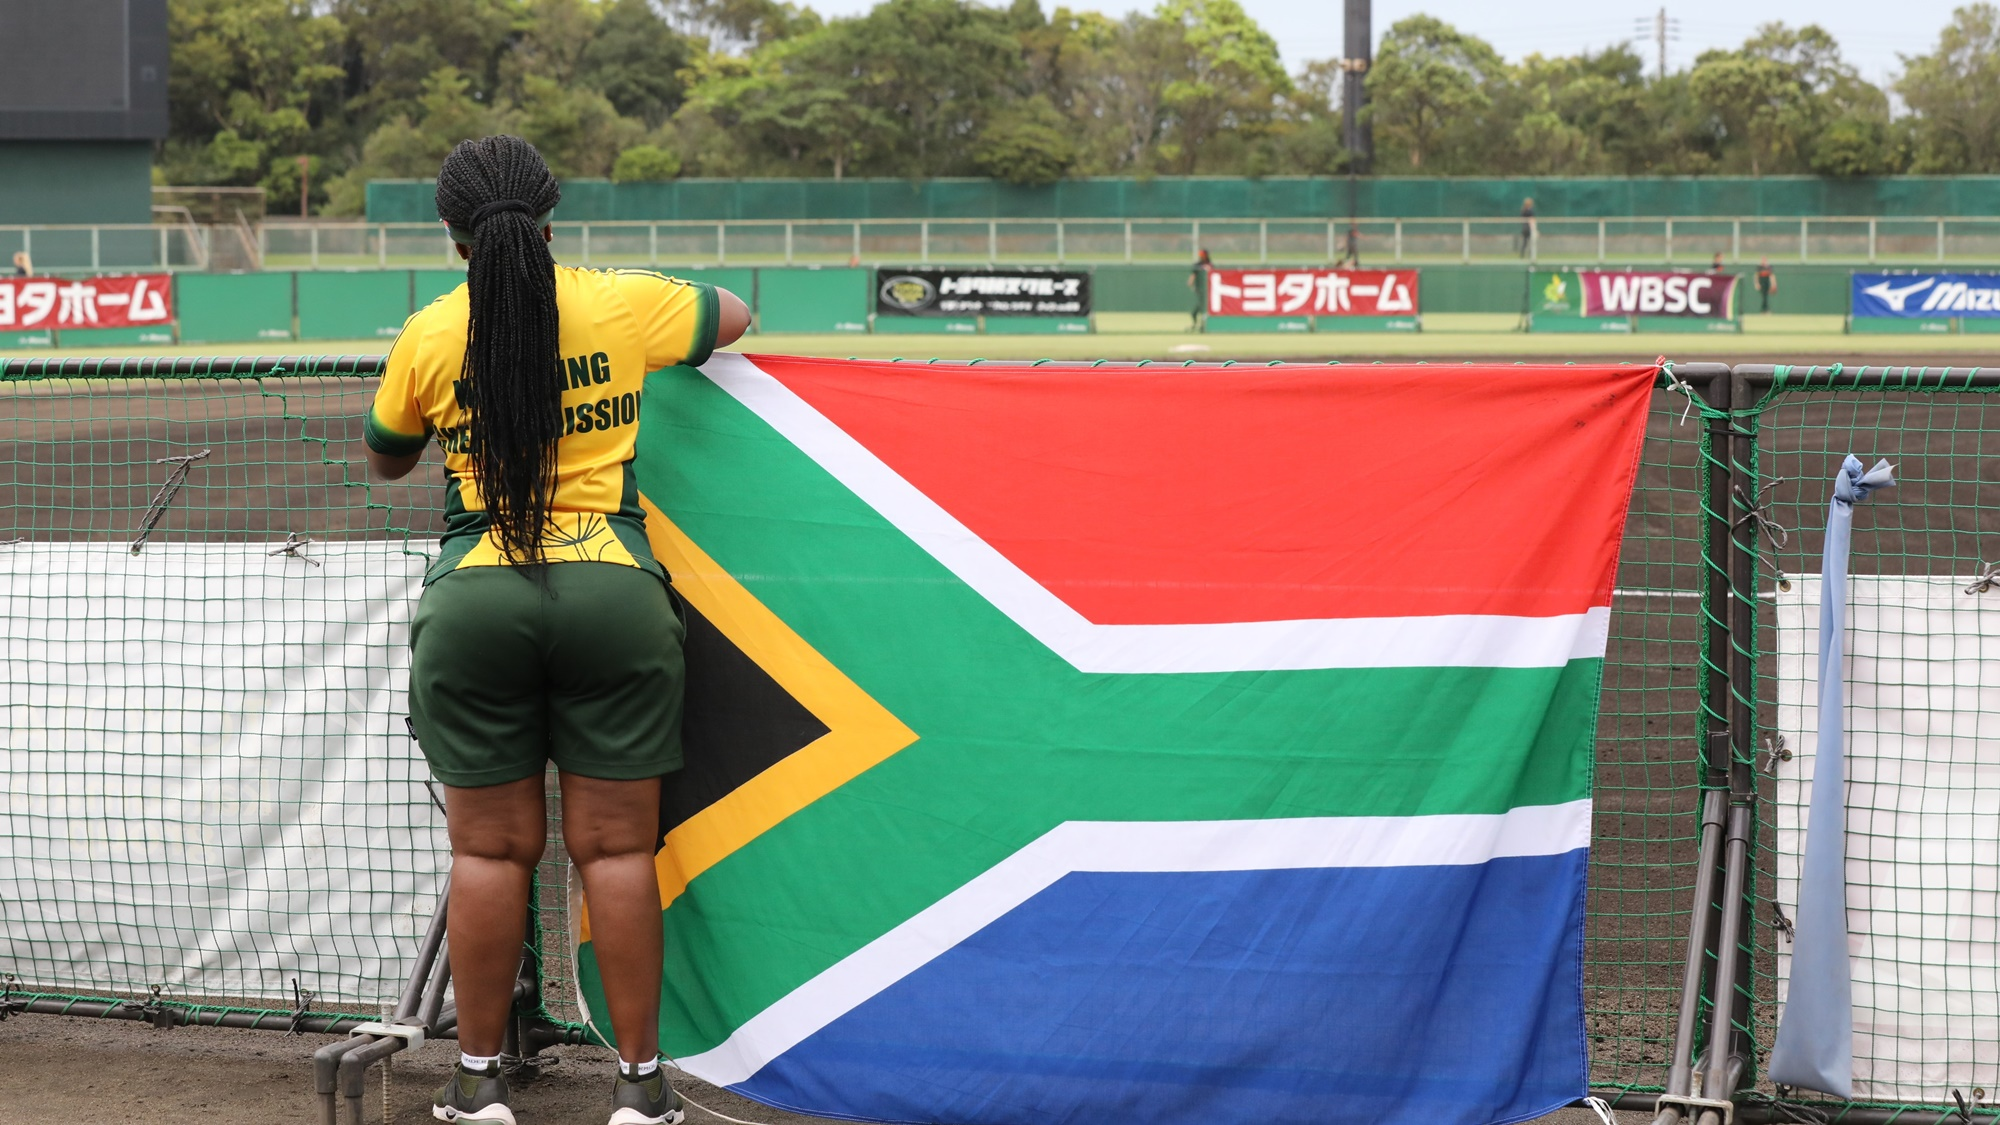 South Africa finally scored their first run in the tournament